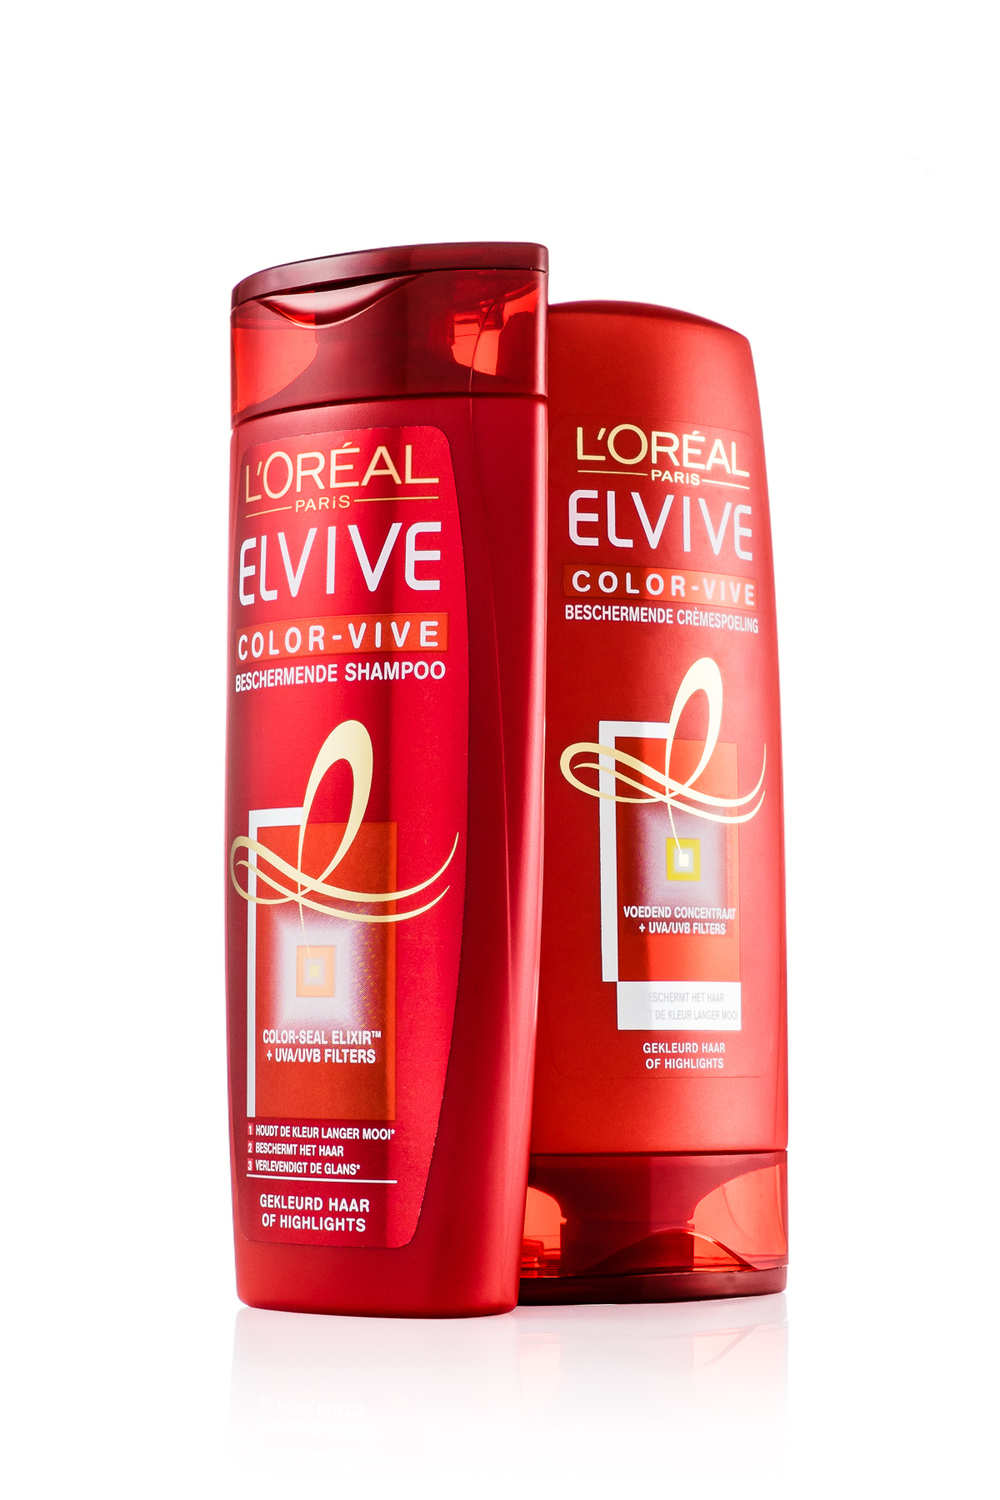 L'oréal Elvive shampoo and conditioner